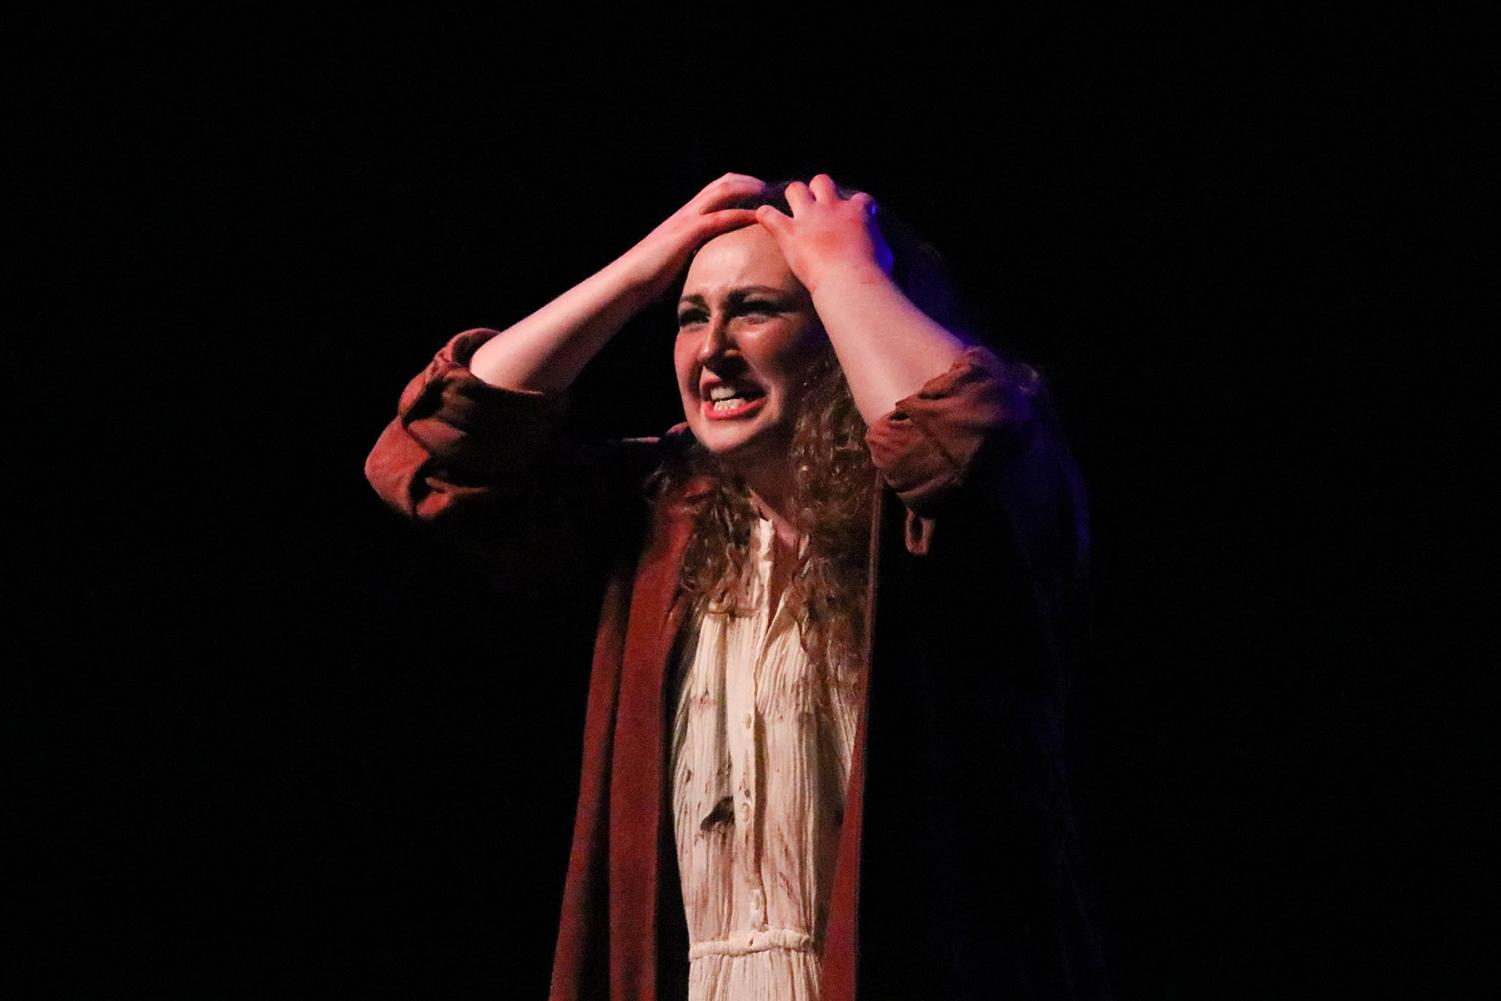 Lady Macbeth (KarLee Jones) speaks to the audience in a reaction shot during a performance.